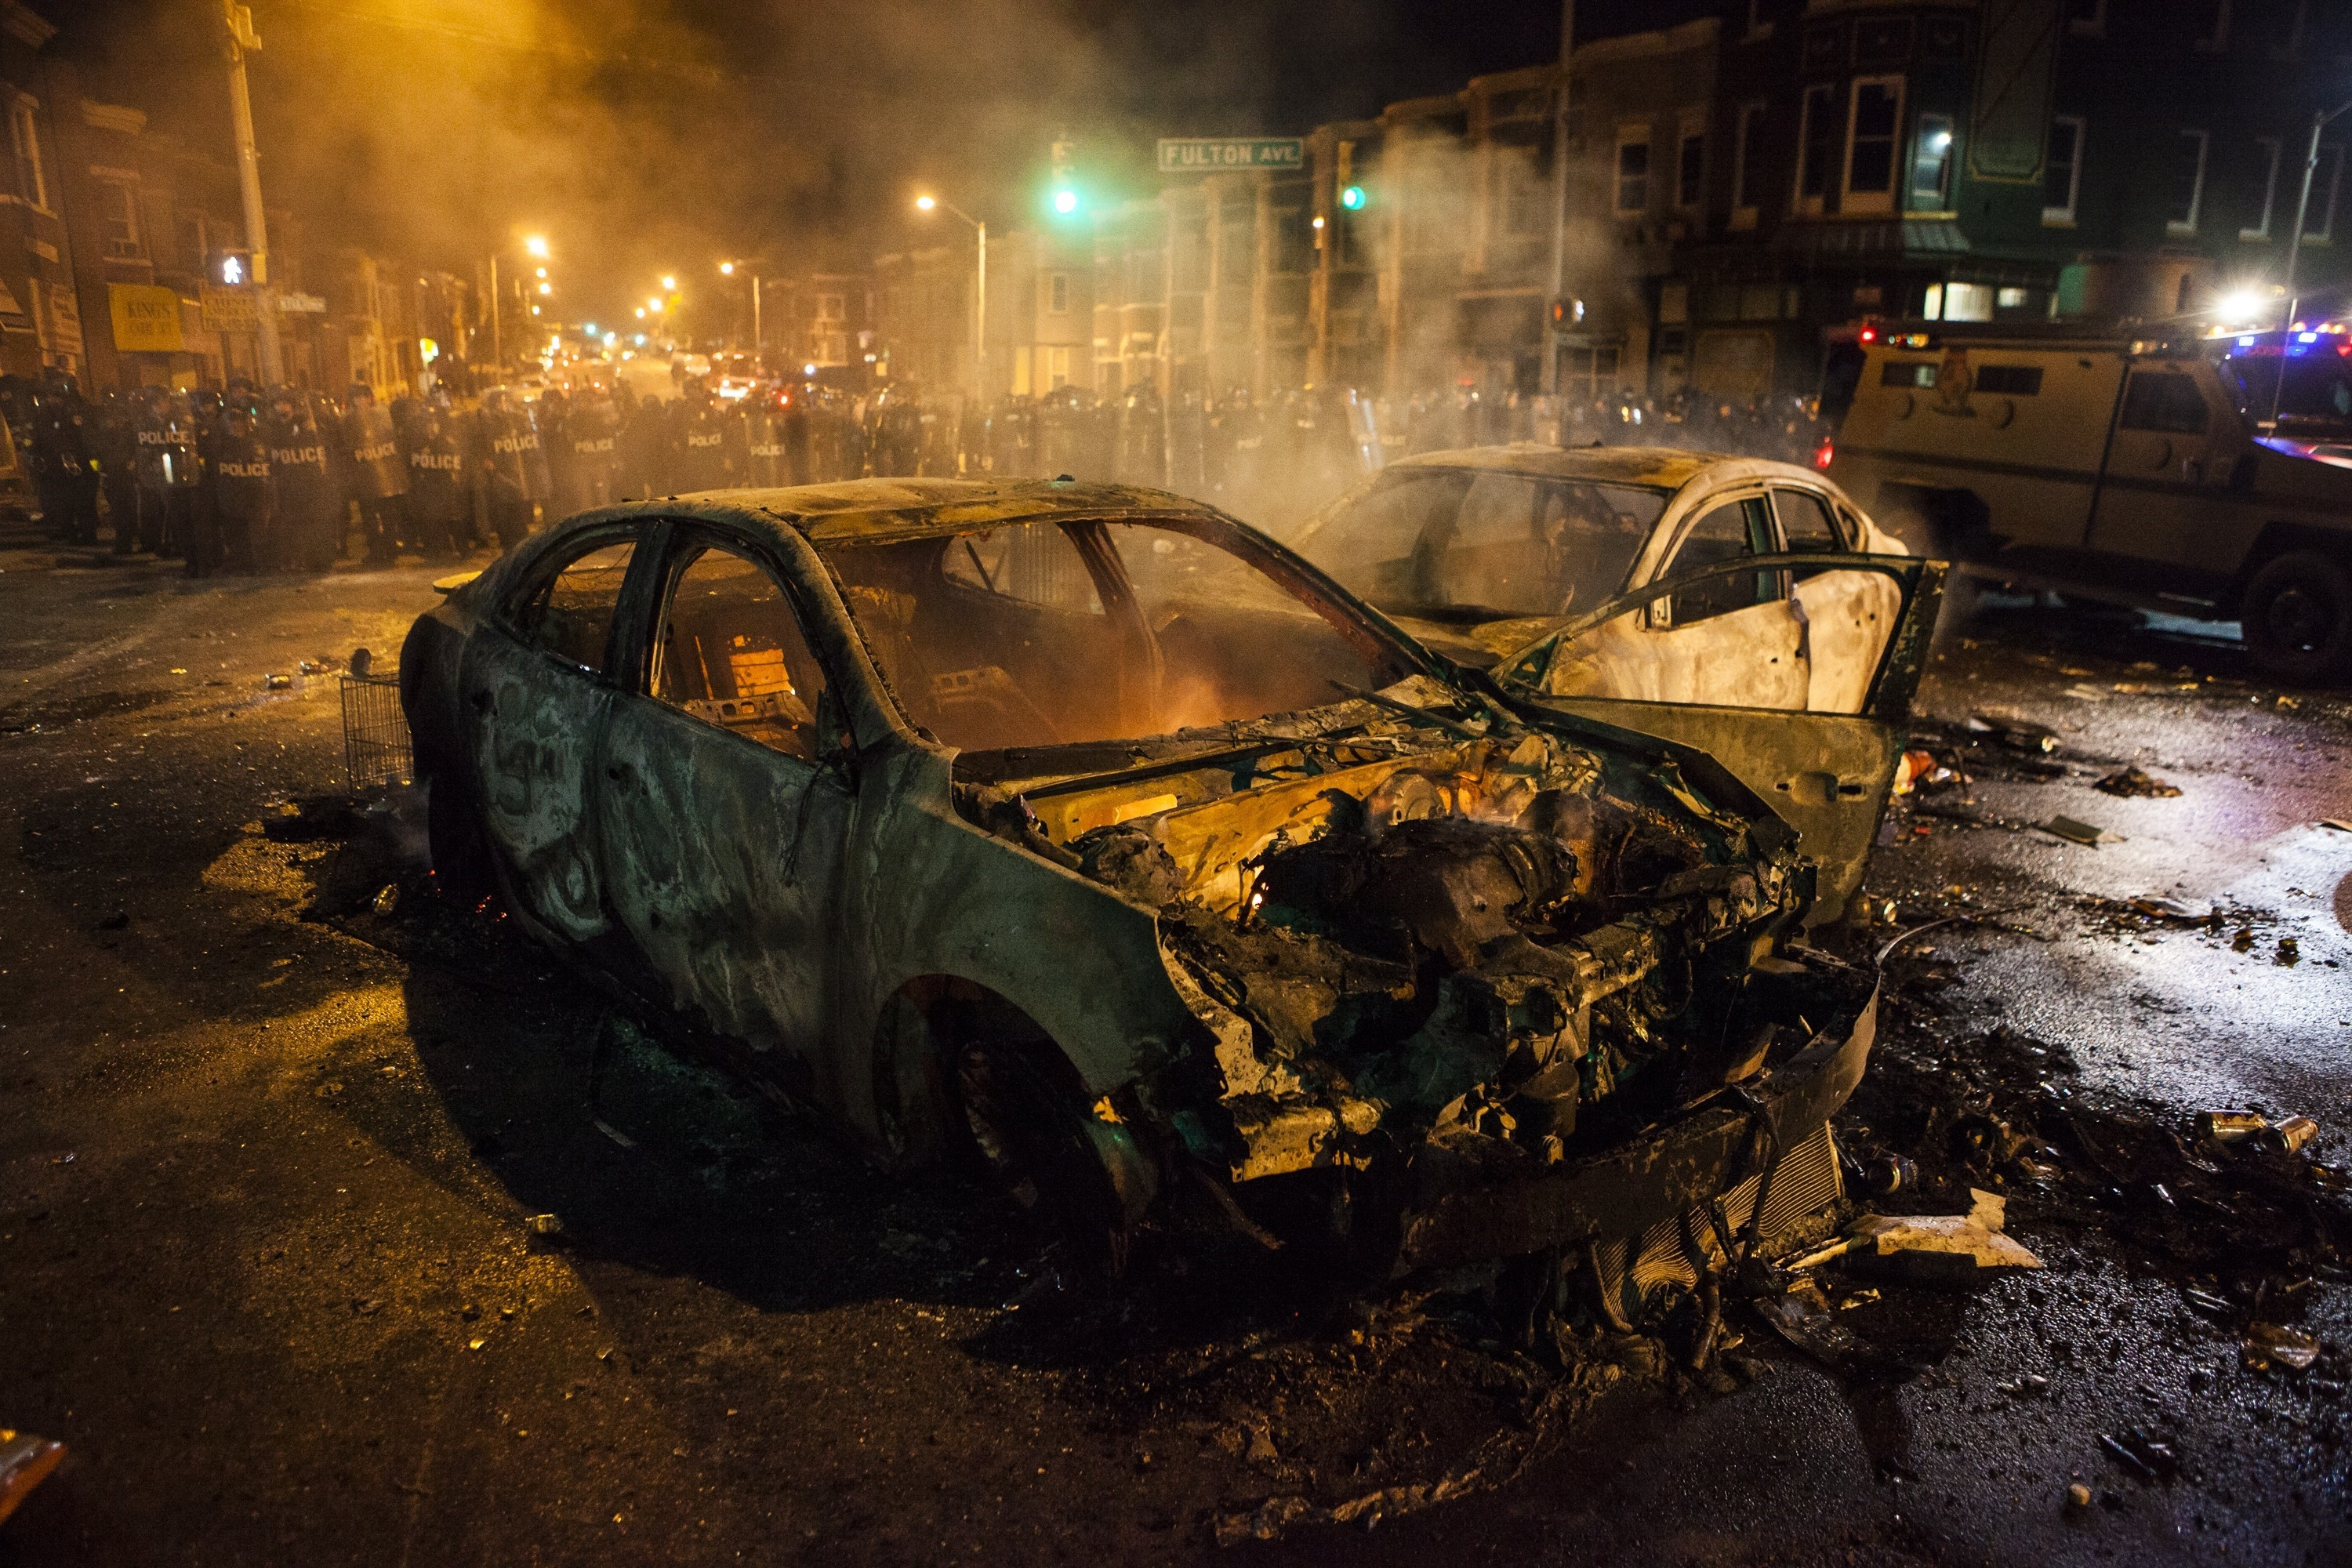 Clashes in Baltimore over death of Freddie Gray